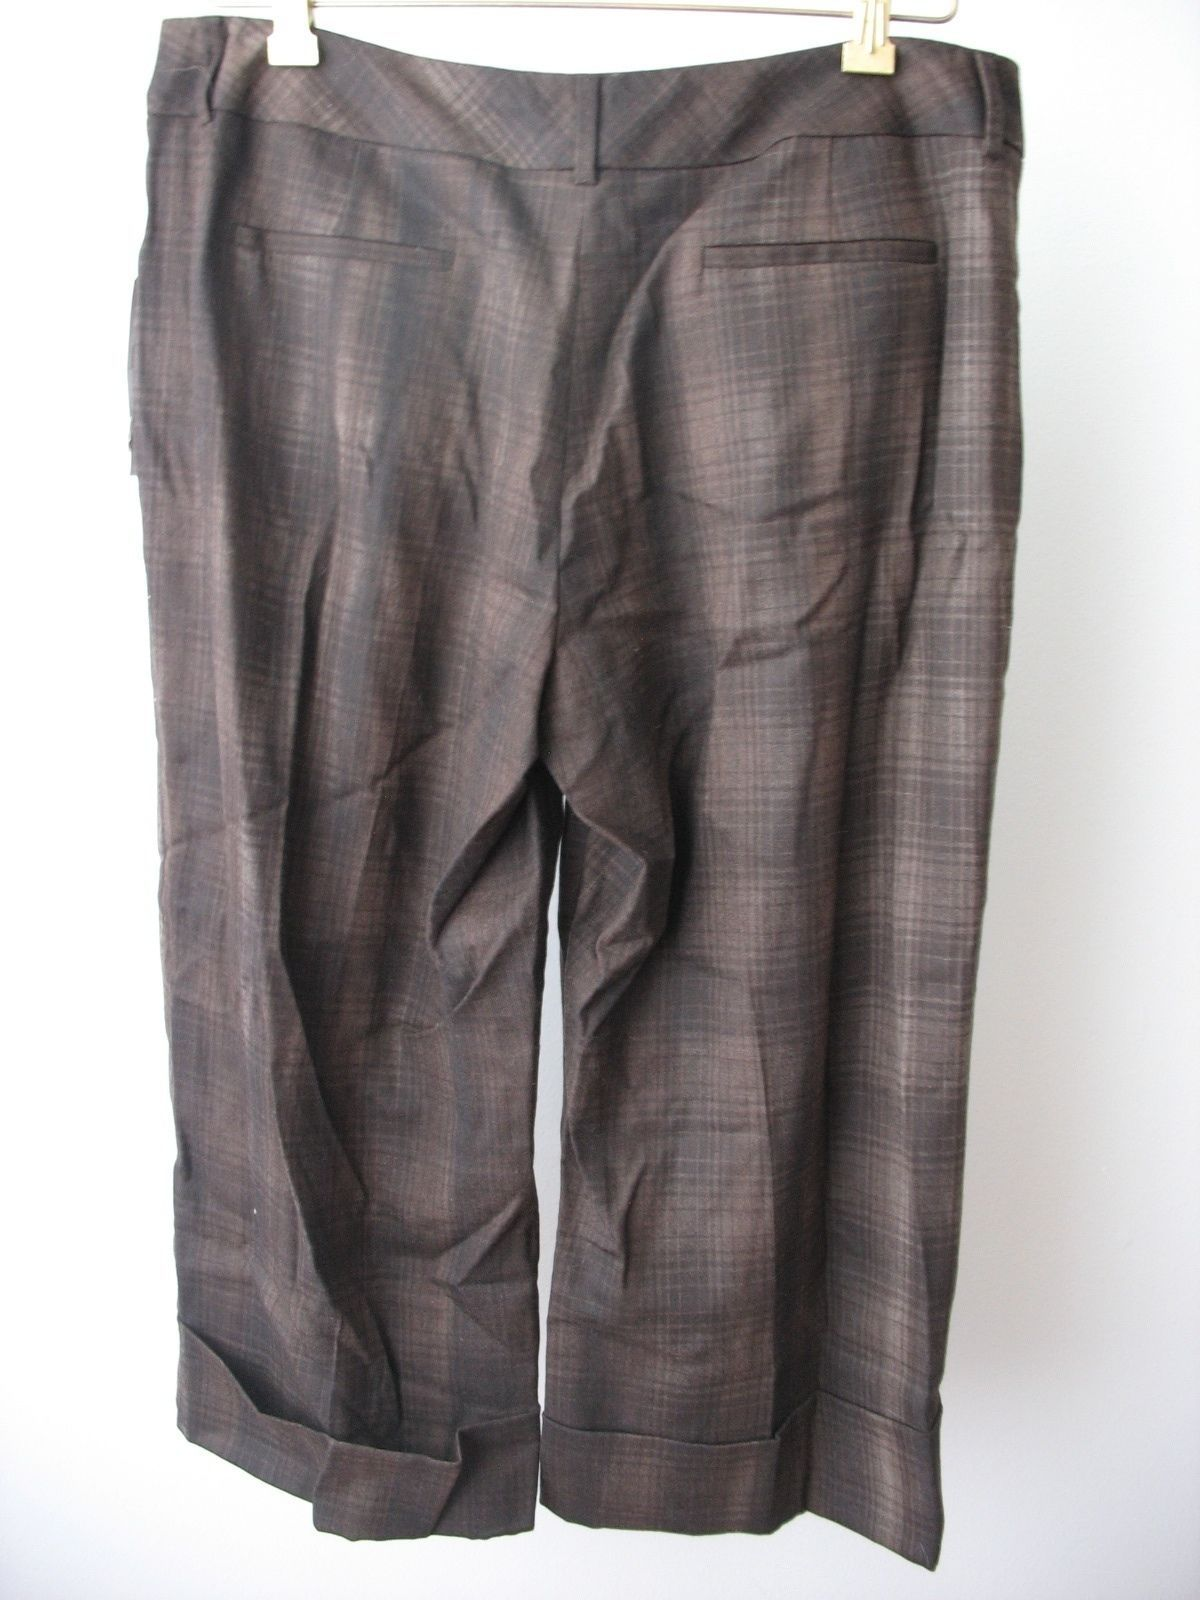 BRAND NEW GAUCHO PANTS BY SAKS FIFTH AVENUE